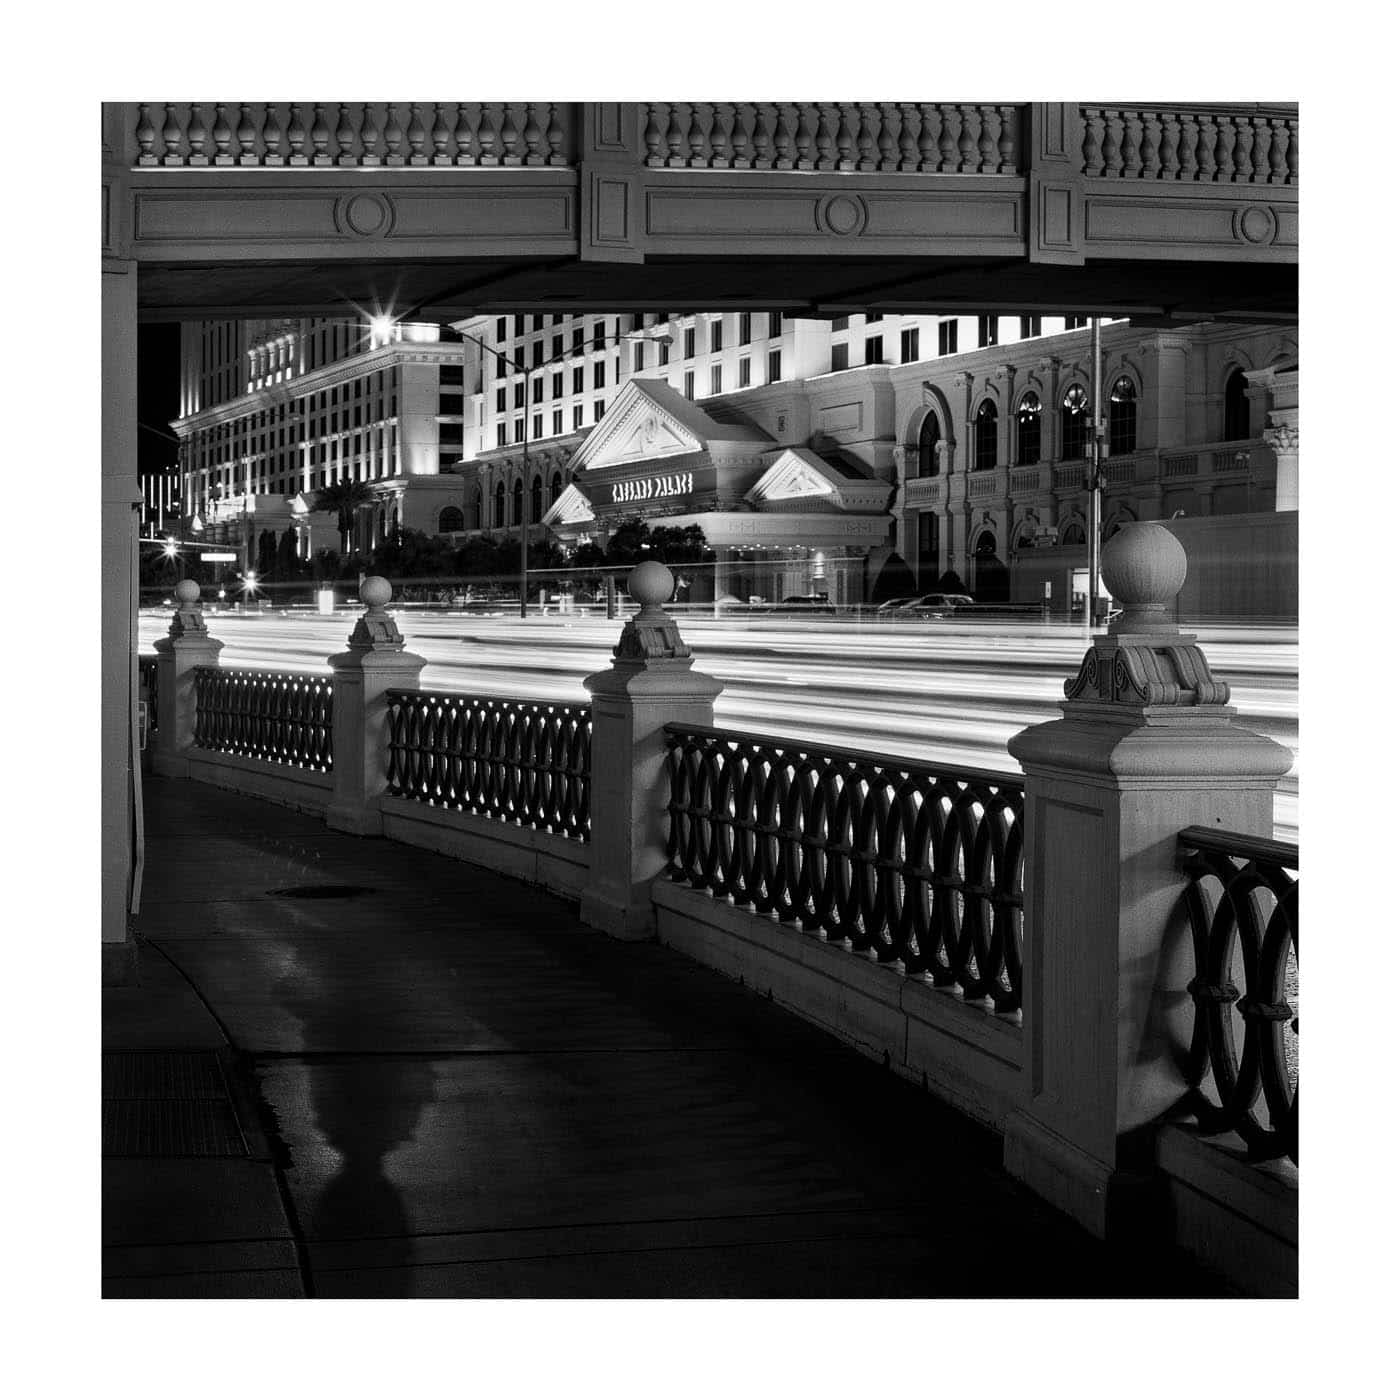 Las Vegas at night with black and white film